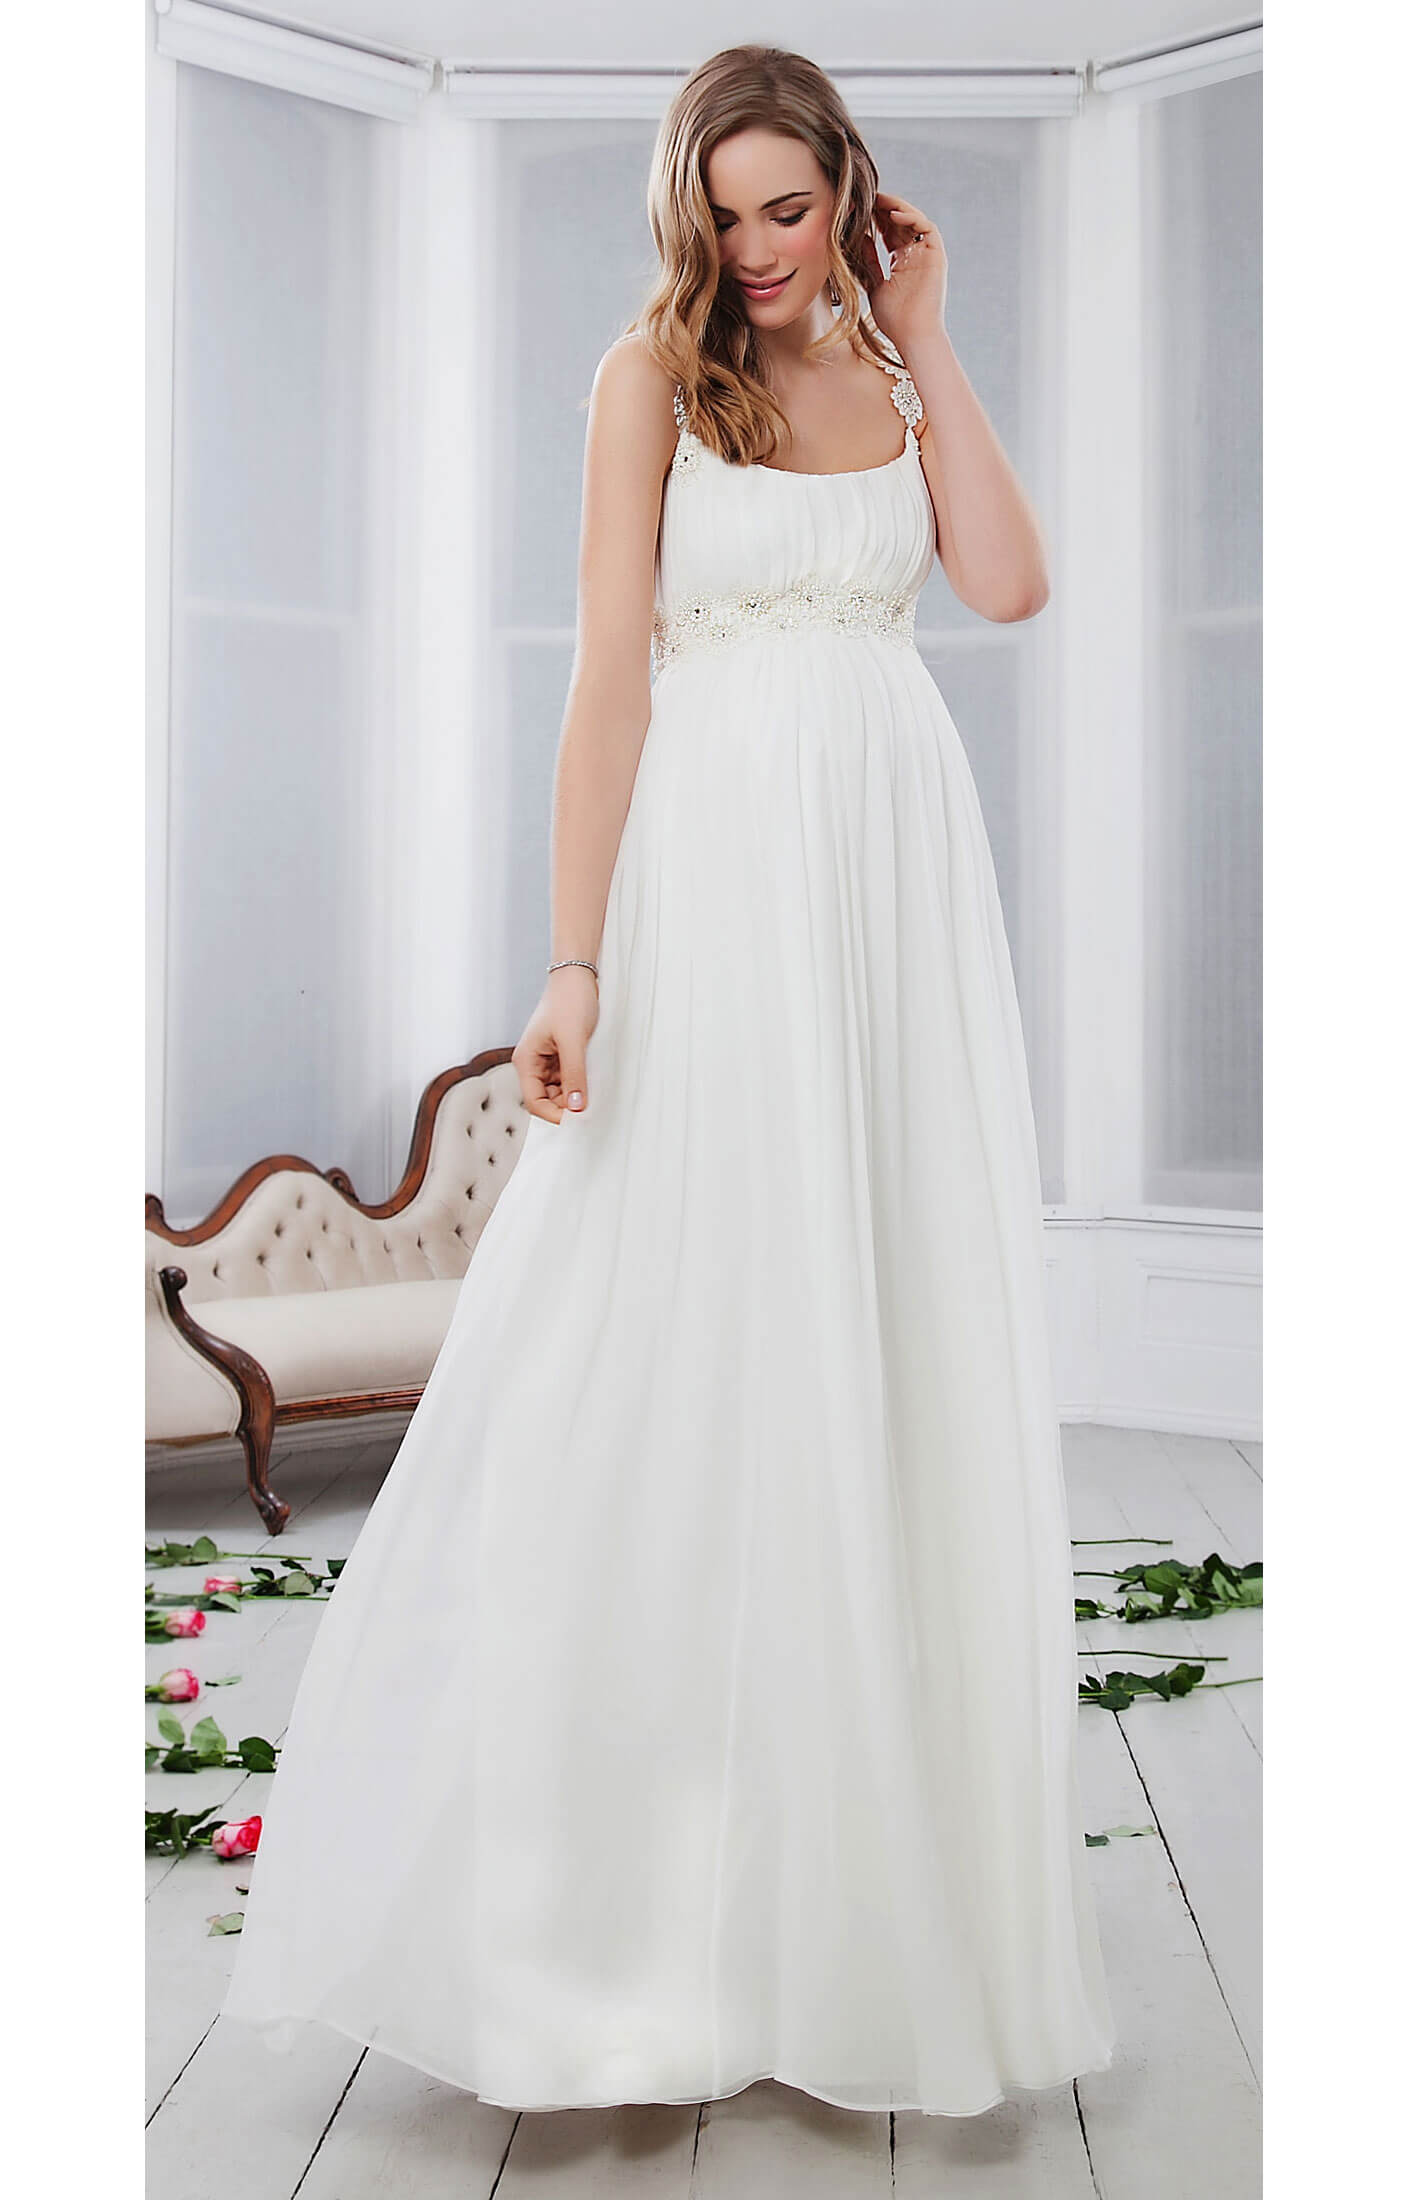 Prairie Daisy Silk Maternity Gown Maternity Wedding Dresses Evening Wear And Party Clothes By Tiffany Rose Us,Stylish Beautiful Dresses To Wear To A Wedding As A Guest